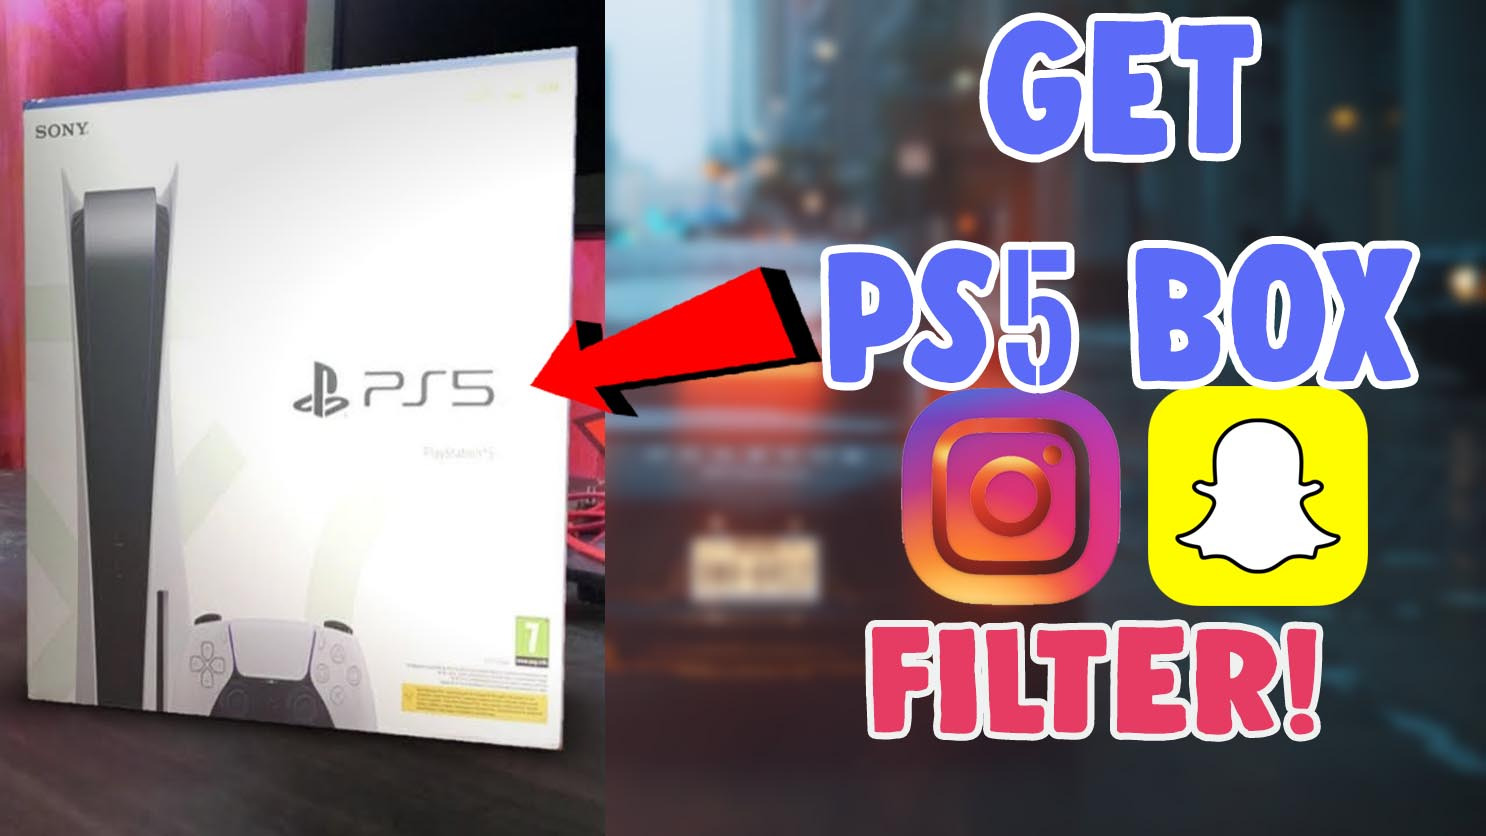 how to get ps 5 box filter on instagram